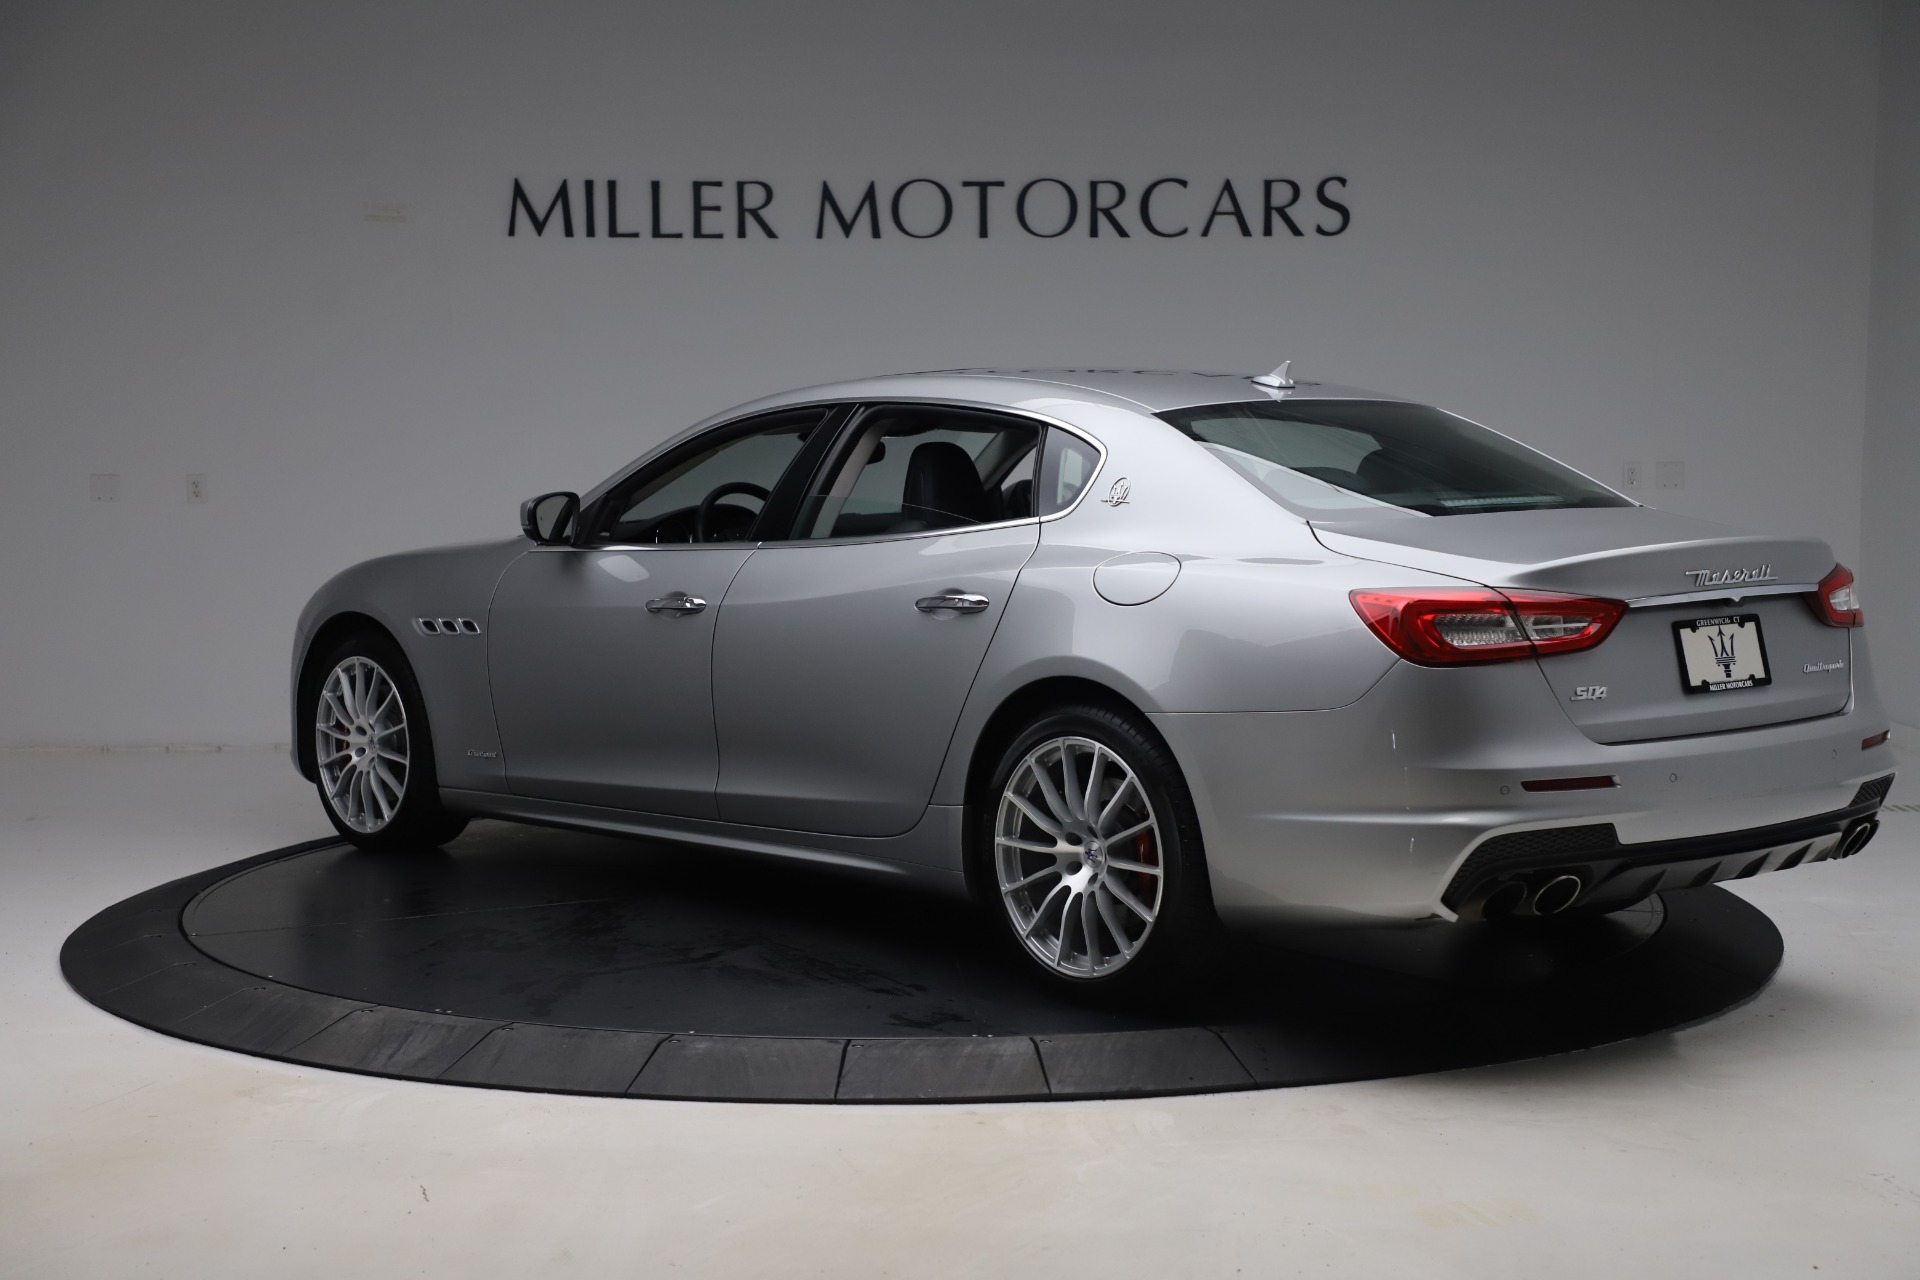 New 2017 Maserati Quattroporte S Q4 GranSport For Sale In Westport, CT 693_p4